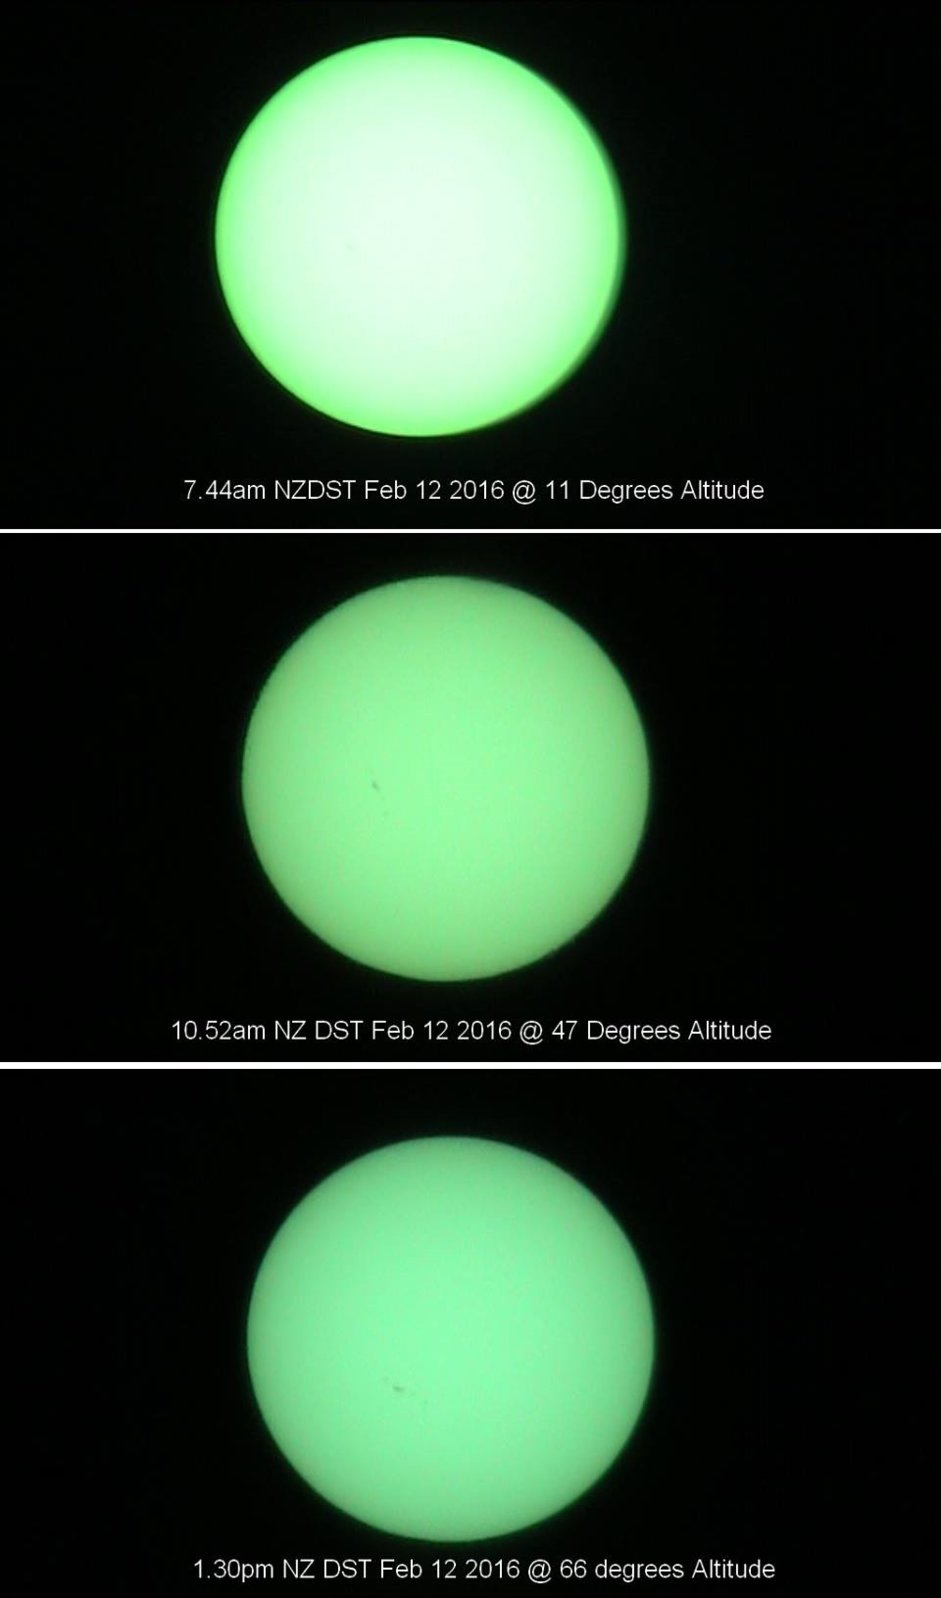 Sun at various altitudes.